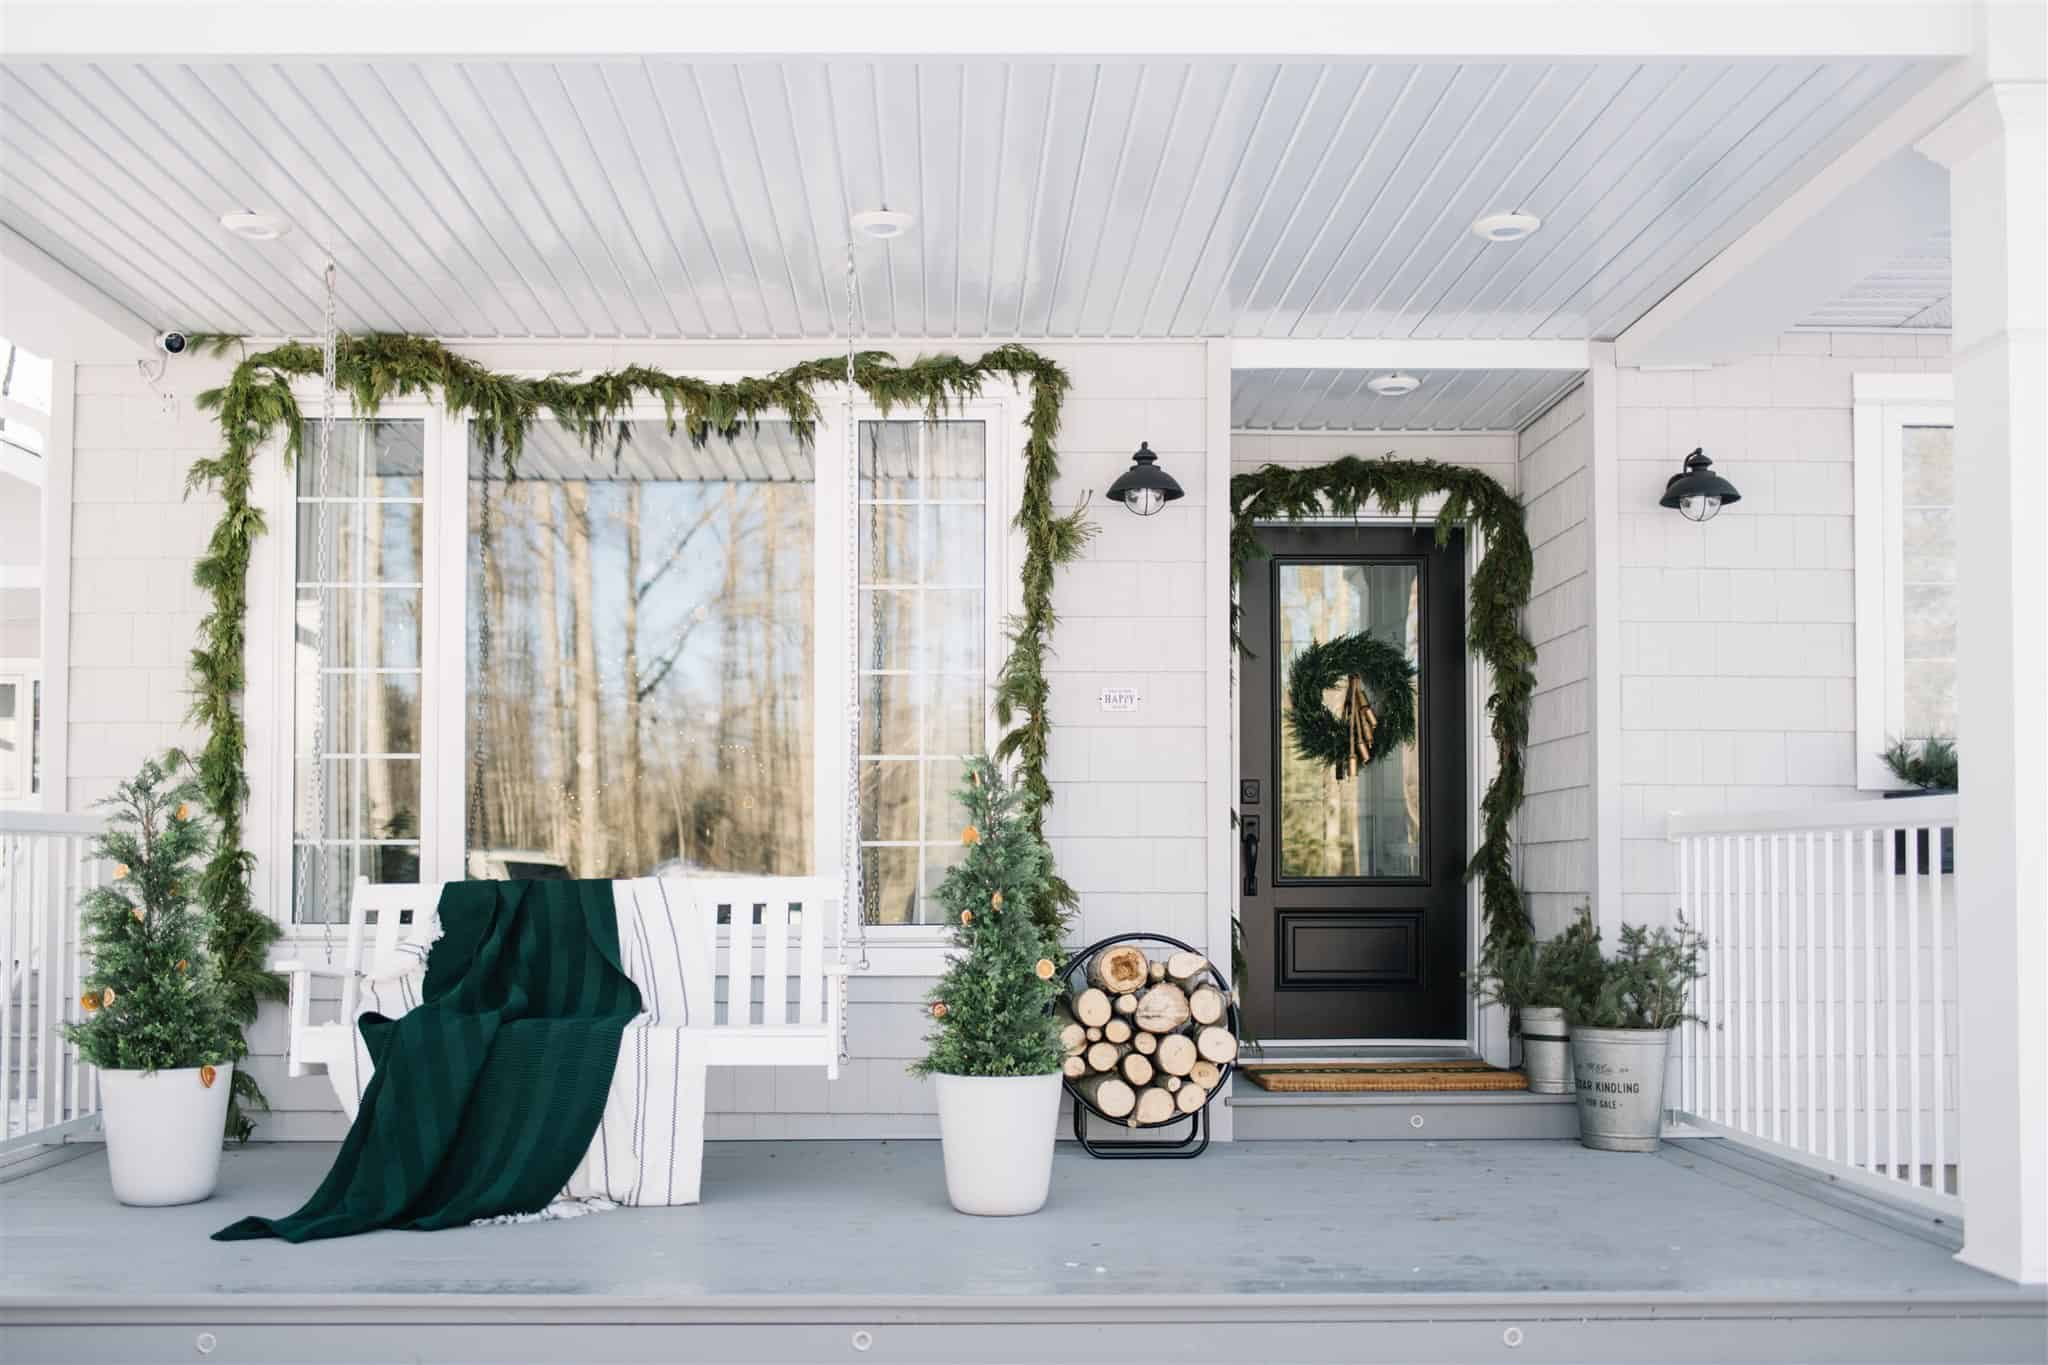 Porch decorating ideas that will create a magical oasis